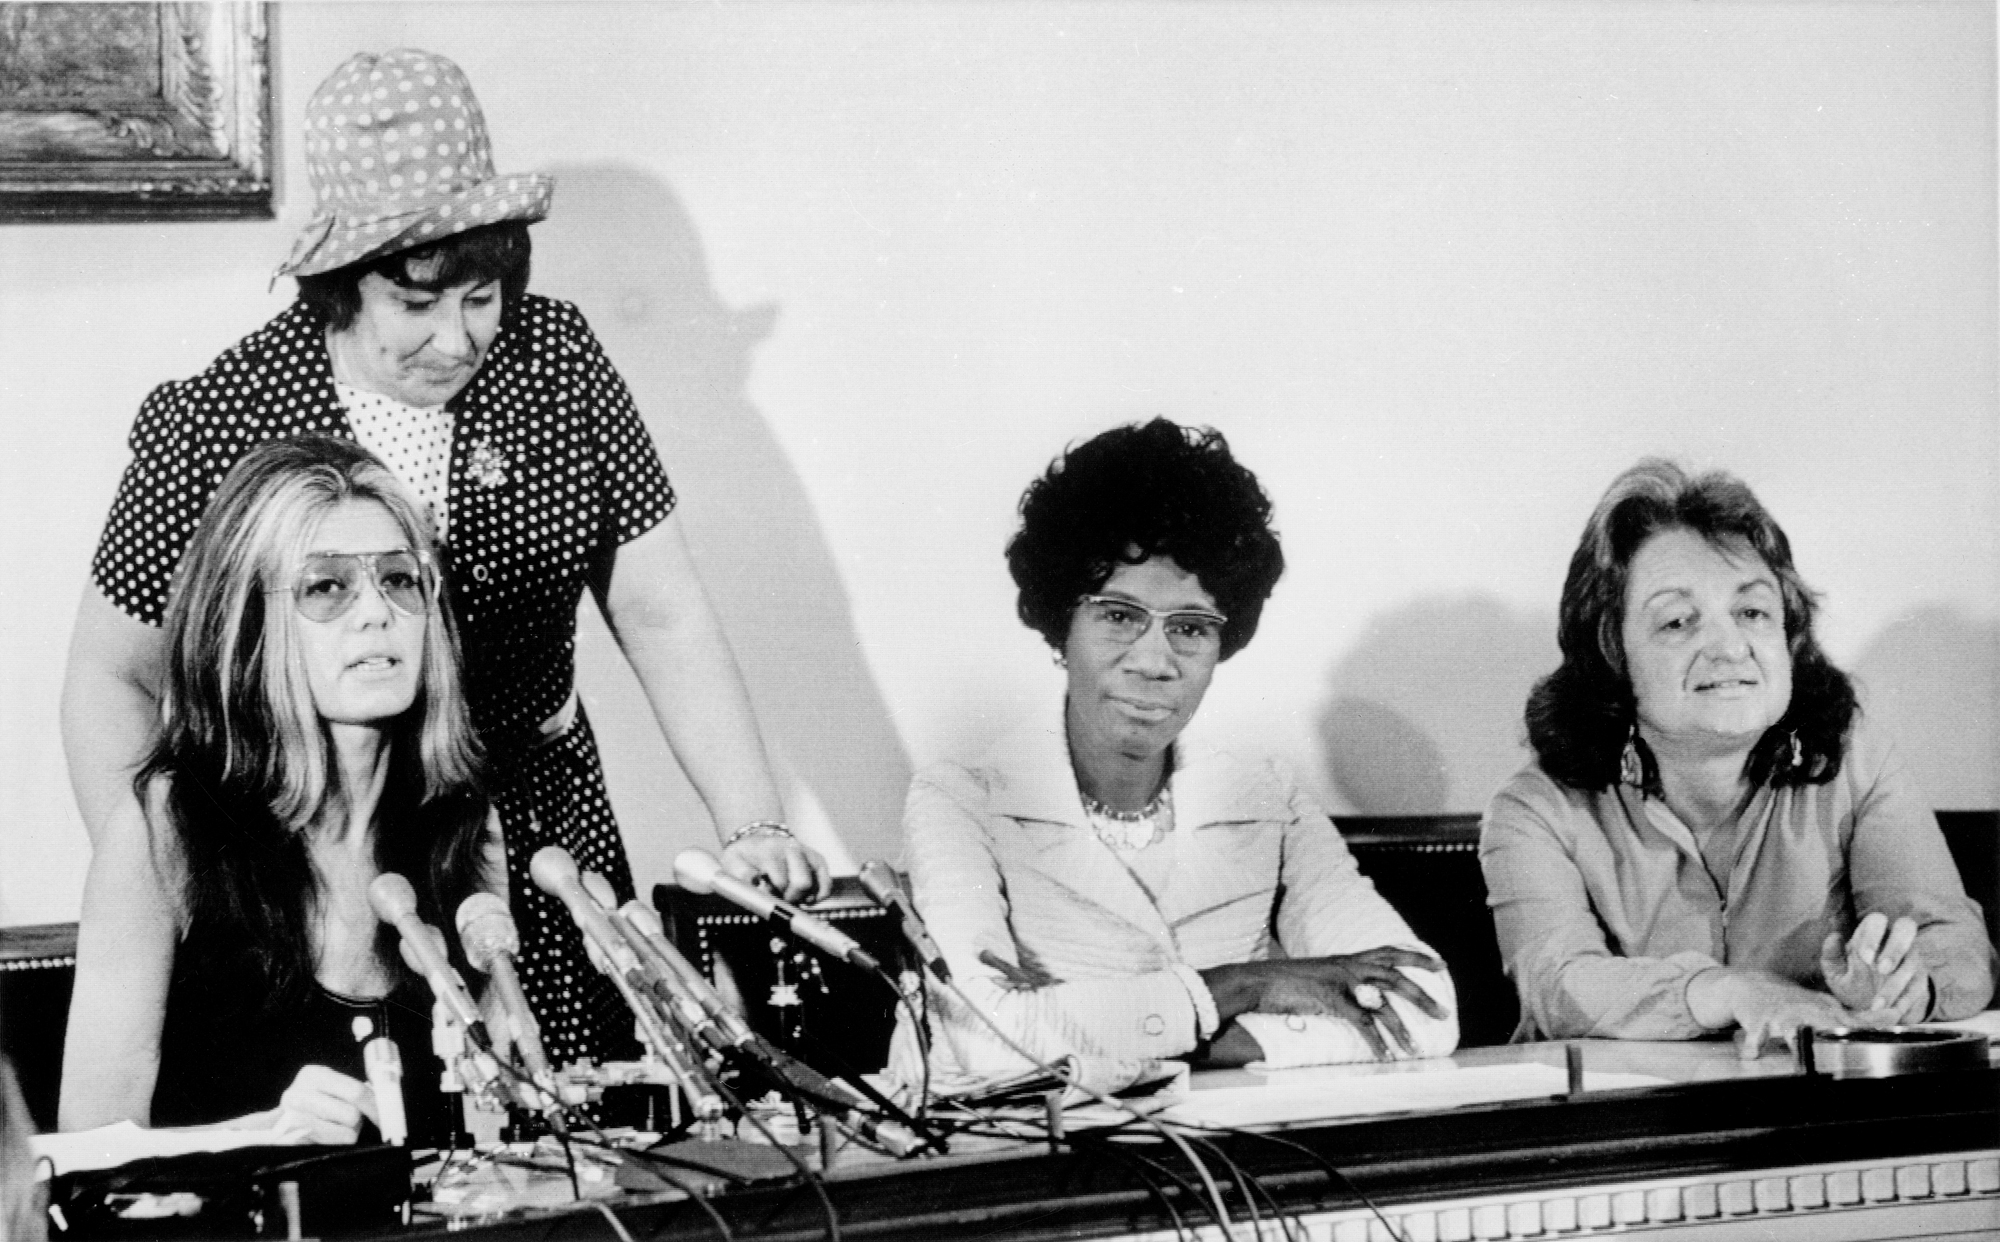 Three women sit at a table, one has microphones in front of her, suggesting it is a press conference